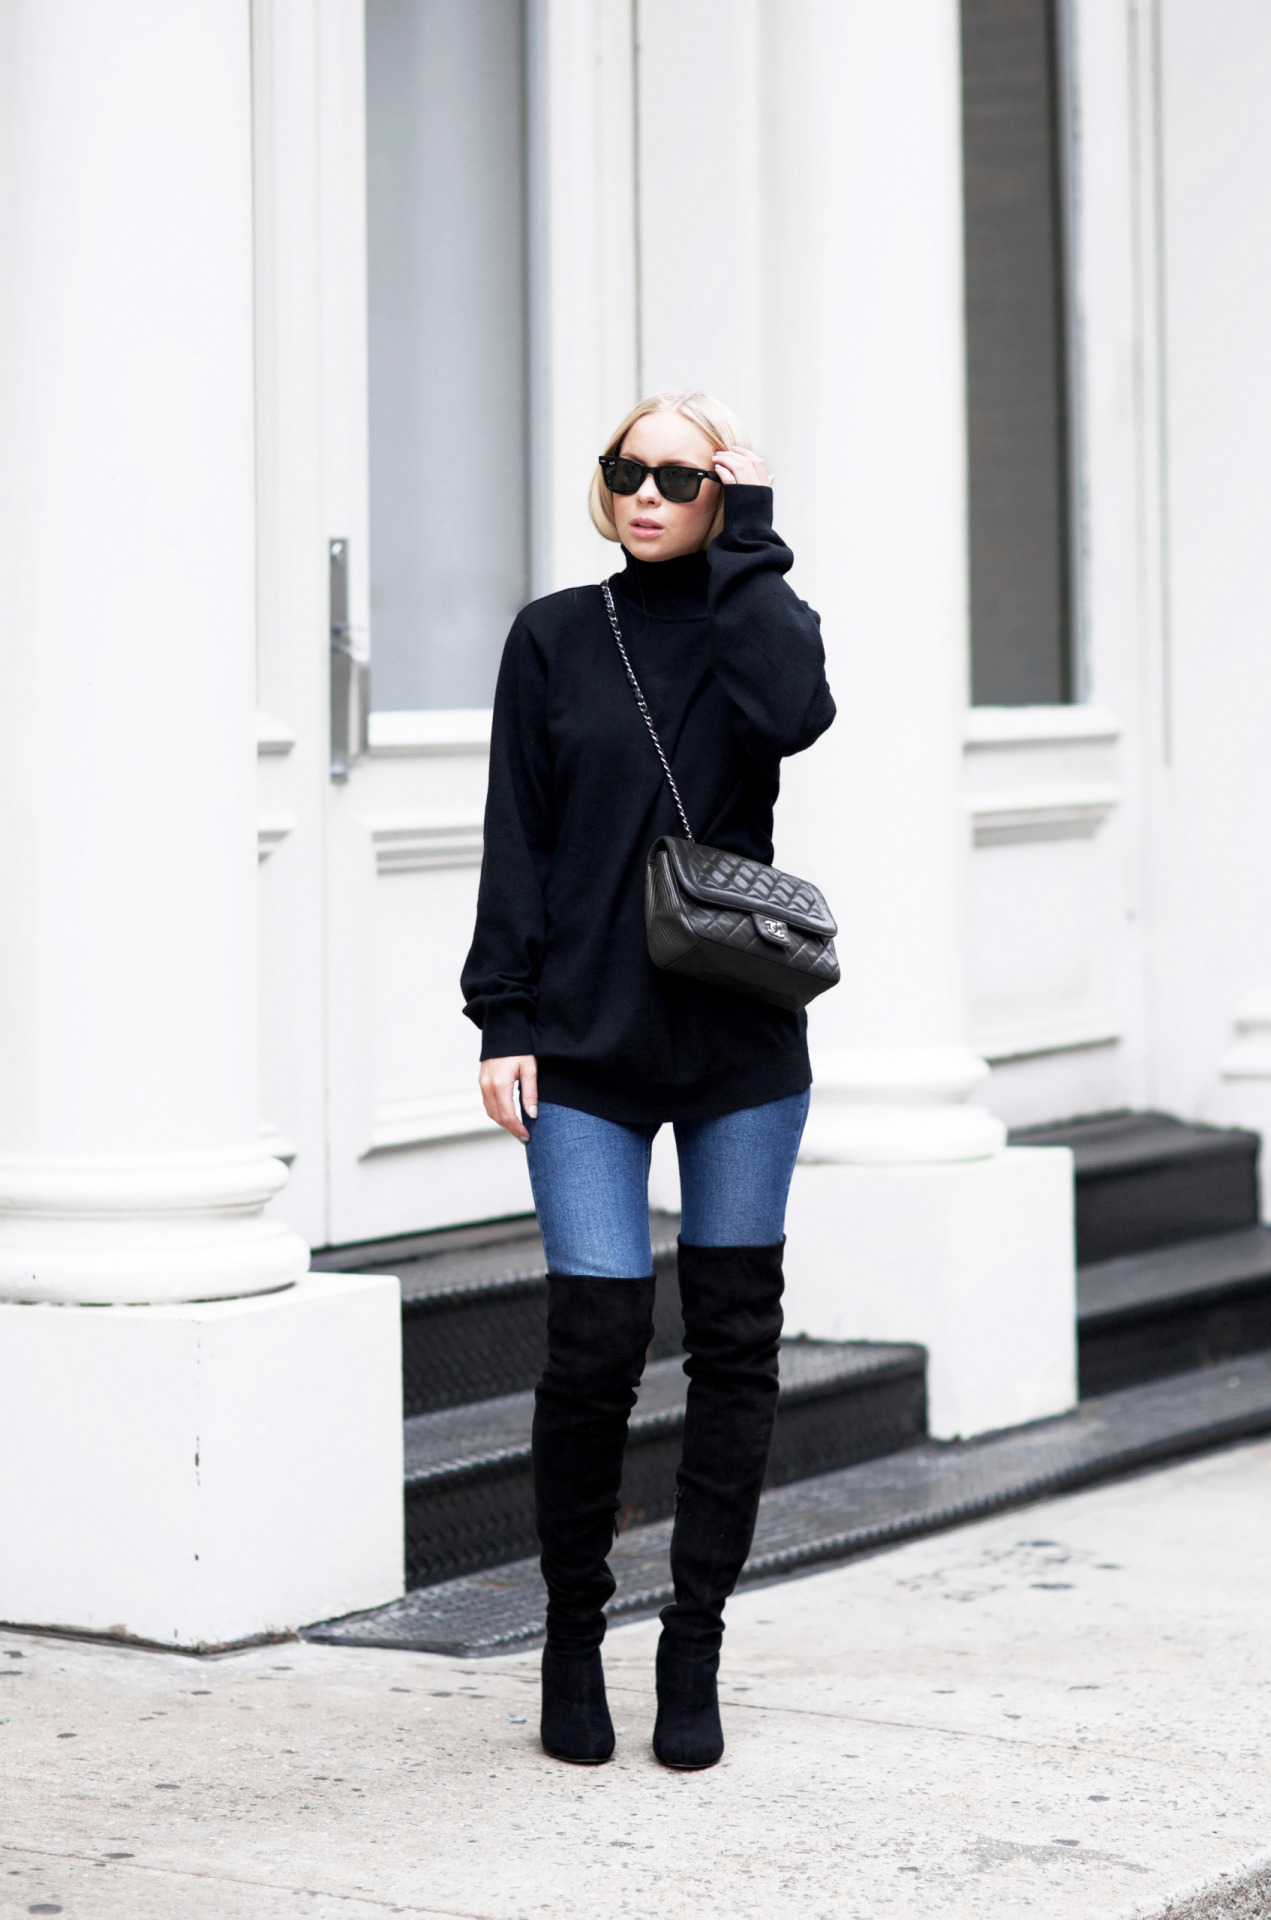 This combination of a black polo neck sweater, denim jeans, and black over the knee boots is a perfect autumn/winter look. Victoria Tornegren finishes the look with a cross body mini bag and a pair of sunnies. Jeans/Boots: Asos, Sweater: Old one, Bag: Chanel.